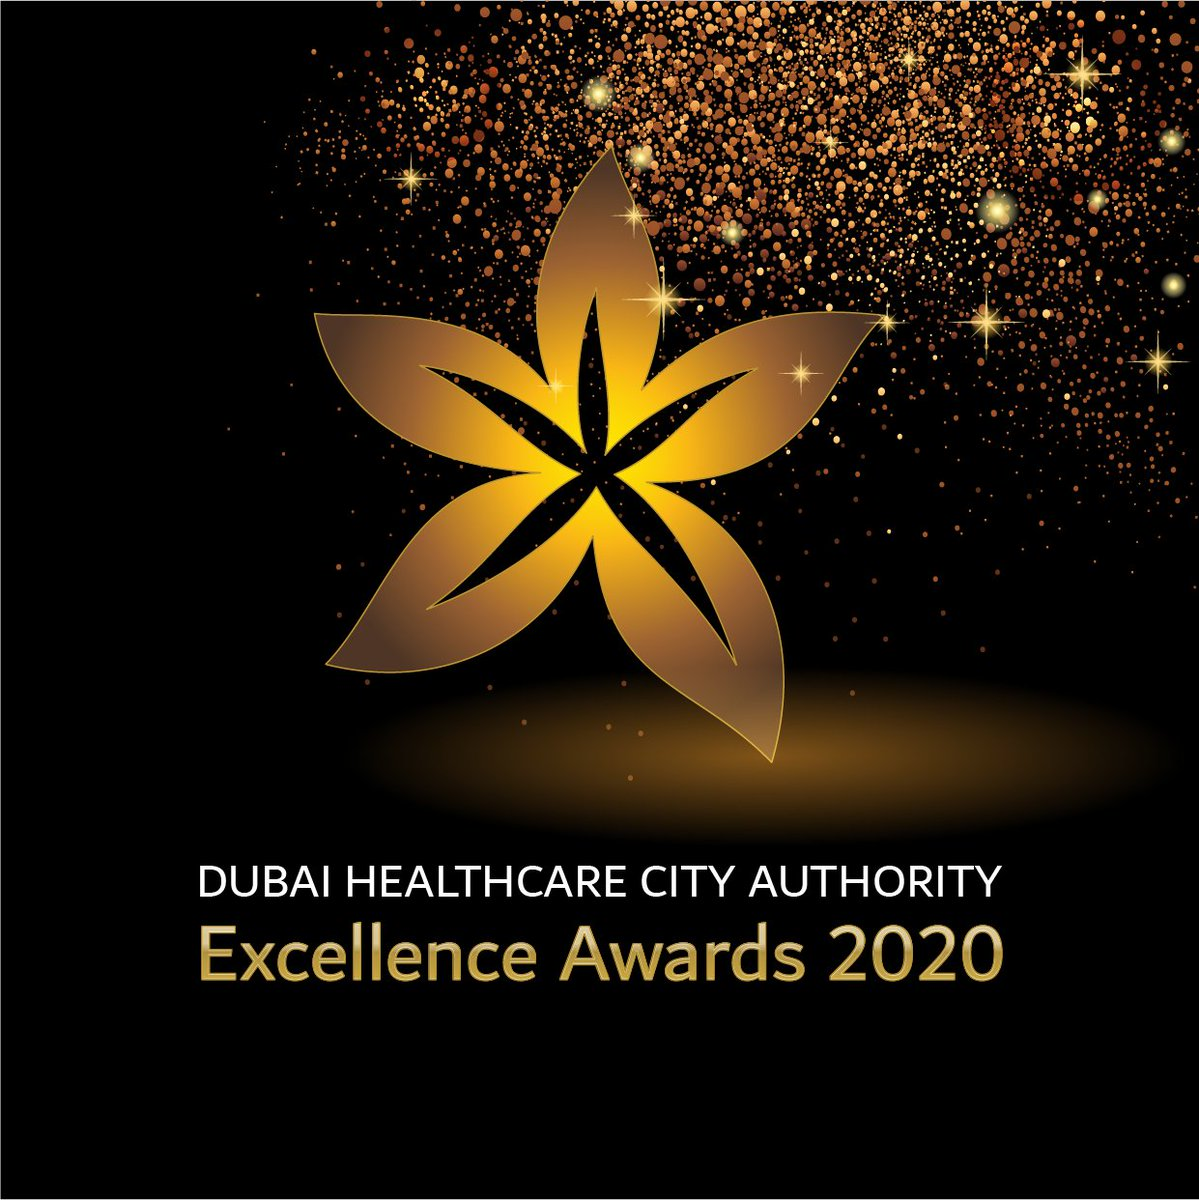 The fourth edition of the DHCA Excellence Awards is coming up in April. This year, we have introduced two new categories. -- READ MORE HERE https://tinyurl.com/txvkhdw  -- #DHCC #CommunityOfChoice #Dubai #MyDubai #DXB #ExcellenceAwardspic.twitter.com/nr2Vobbc3o